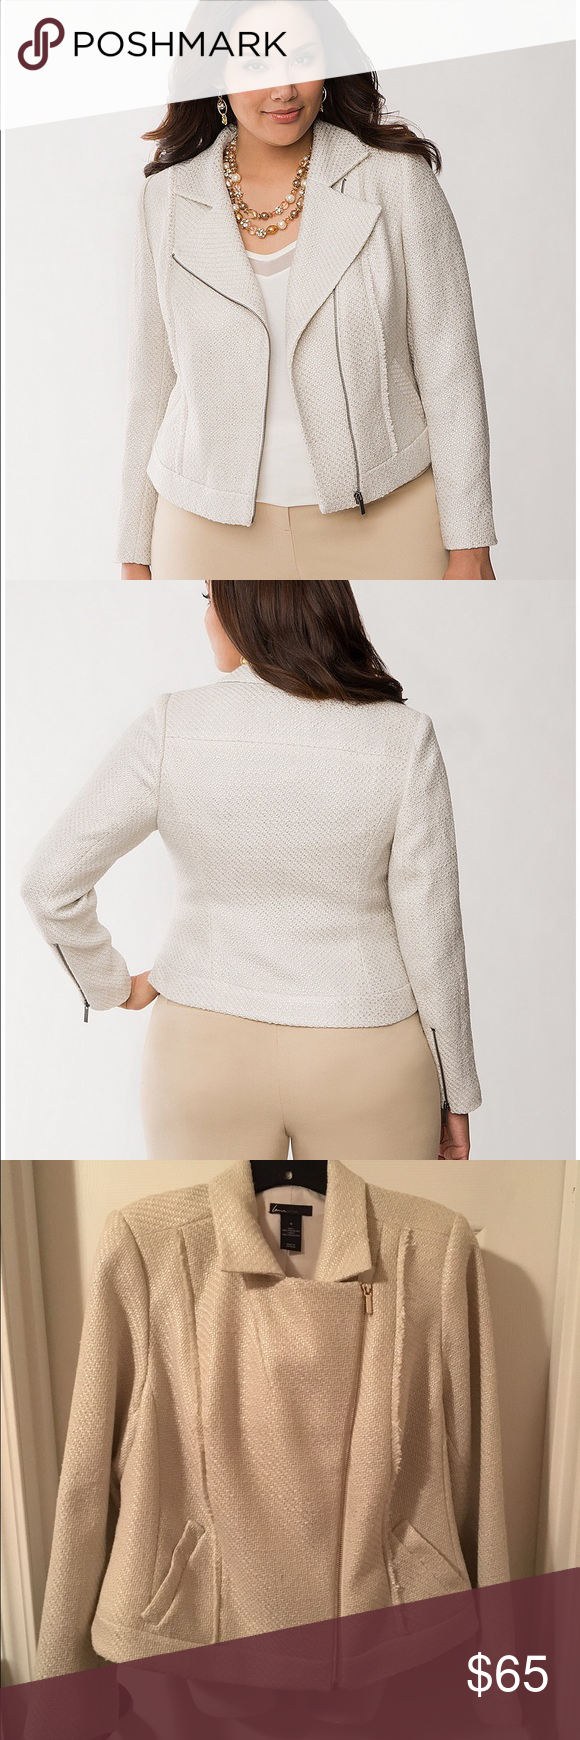 "Lane Bryant Foiled Boucle Moto Jacket Ivory Tweed GORGEOUS Lane Bryant size 16 foil boucle moto jacket - love the sheen and classiness of this piece!           POLYESTER DRY CLEAN ONLY LENGTH: 23"" With a subtle foil gleam and fringed seams, this beautiful boucle moto jacket is sophisticated with just a hint of spice. Energetic, asymmetric cut offers a modern structure that's both flattering and versatile for dressy or casual occasions. Finished with oversized lapels, zip-front closure and…"